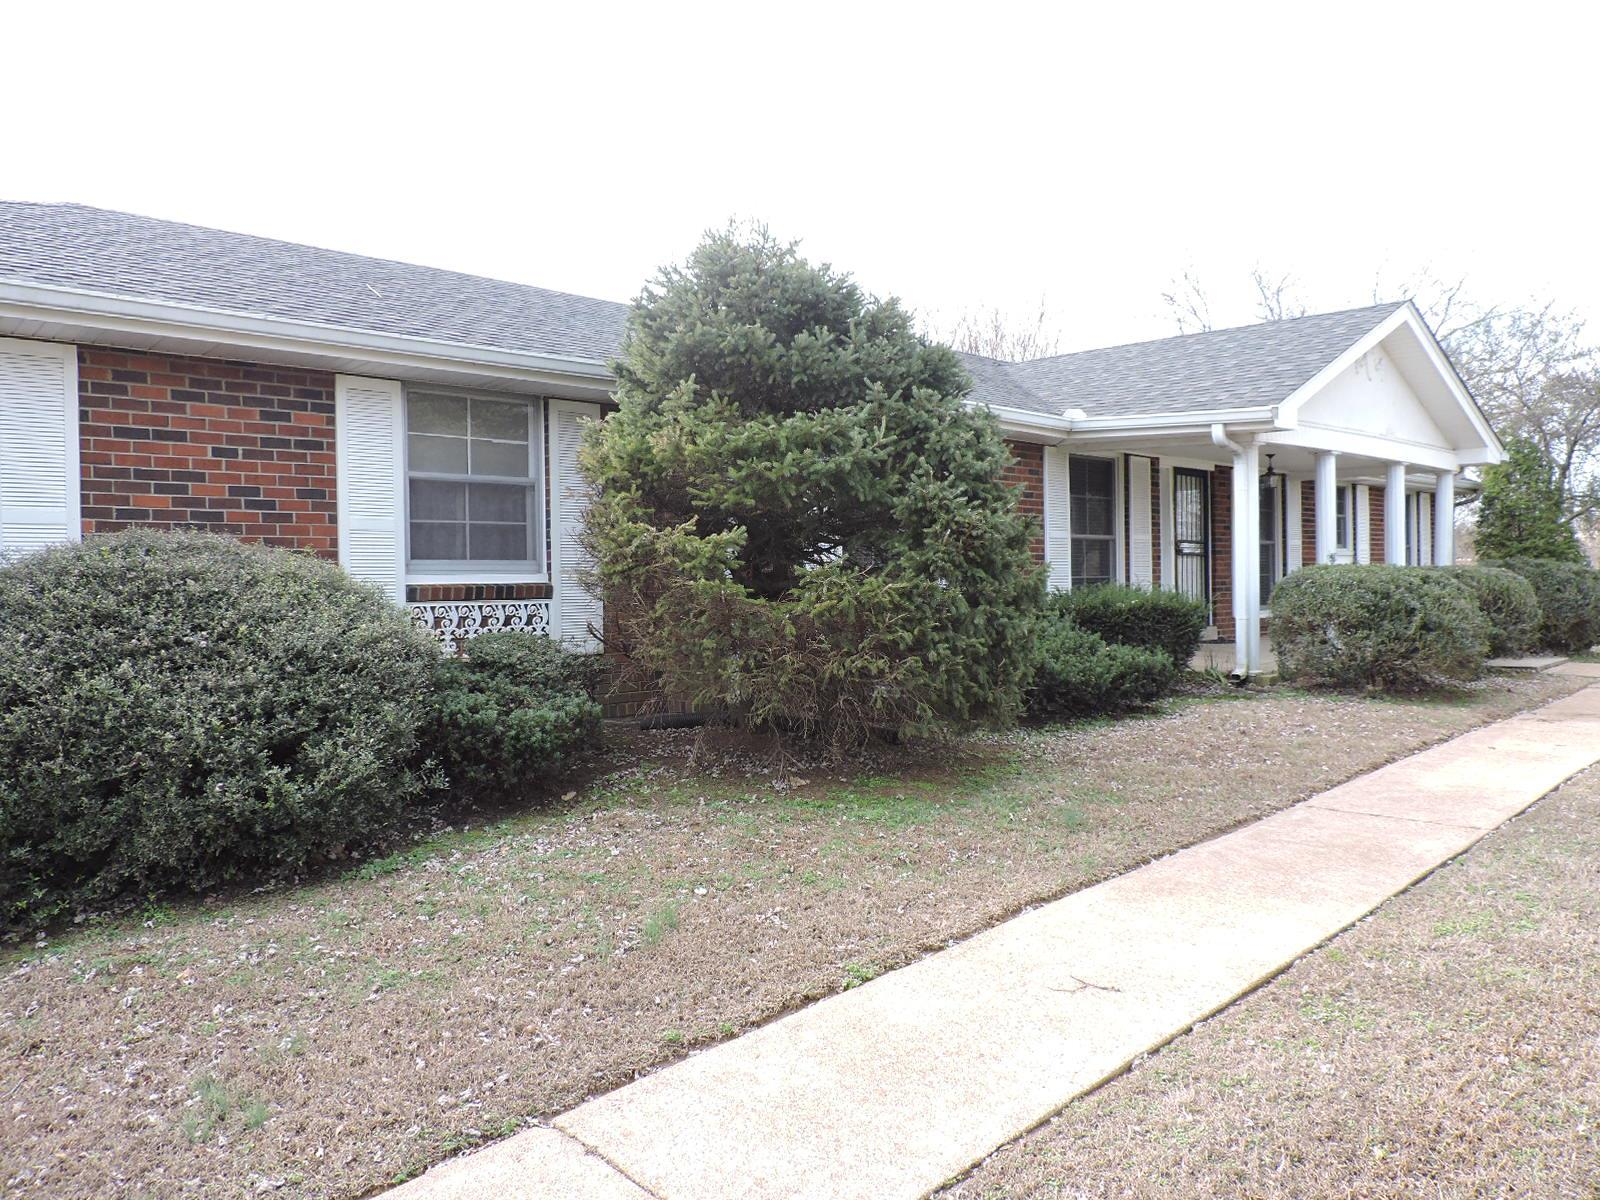 102 MEDEARIS DR., Old Hickory, TN 37138